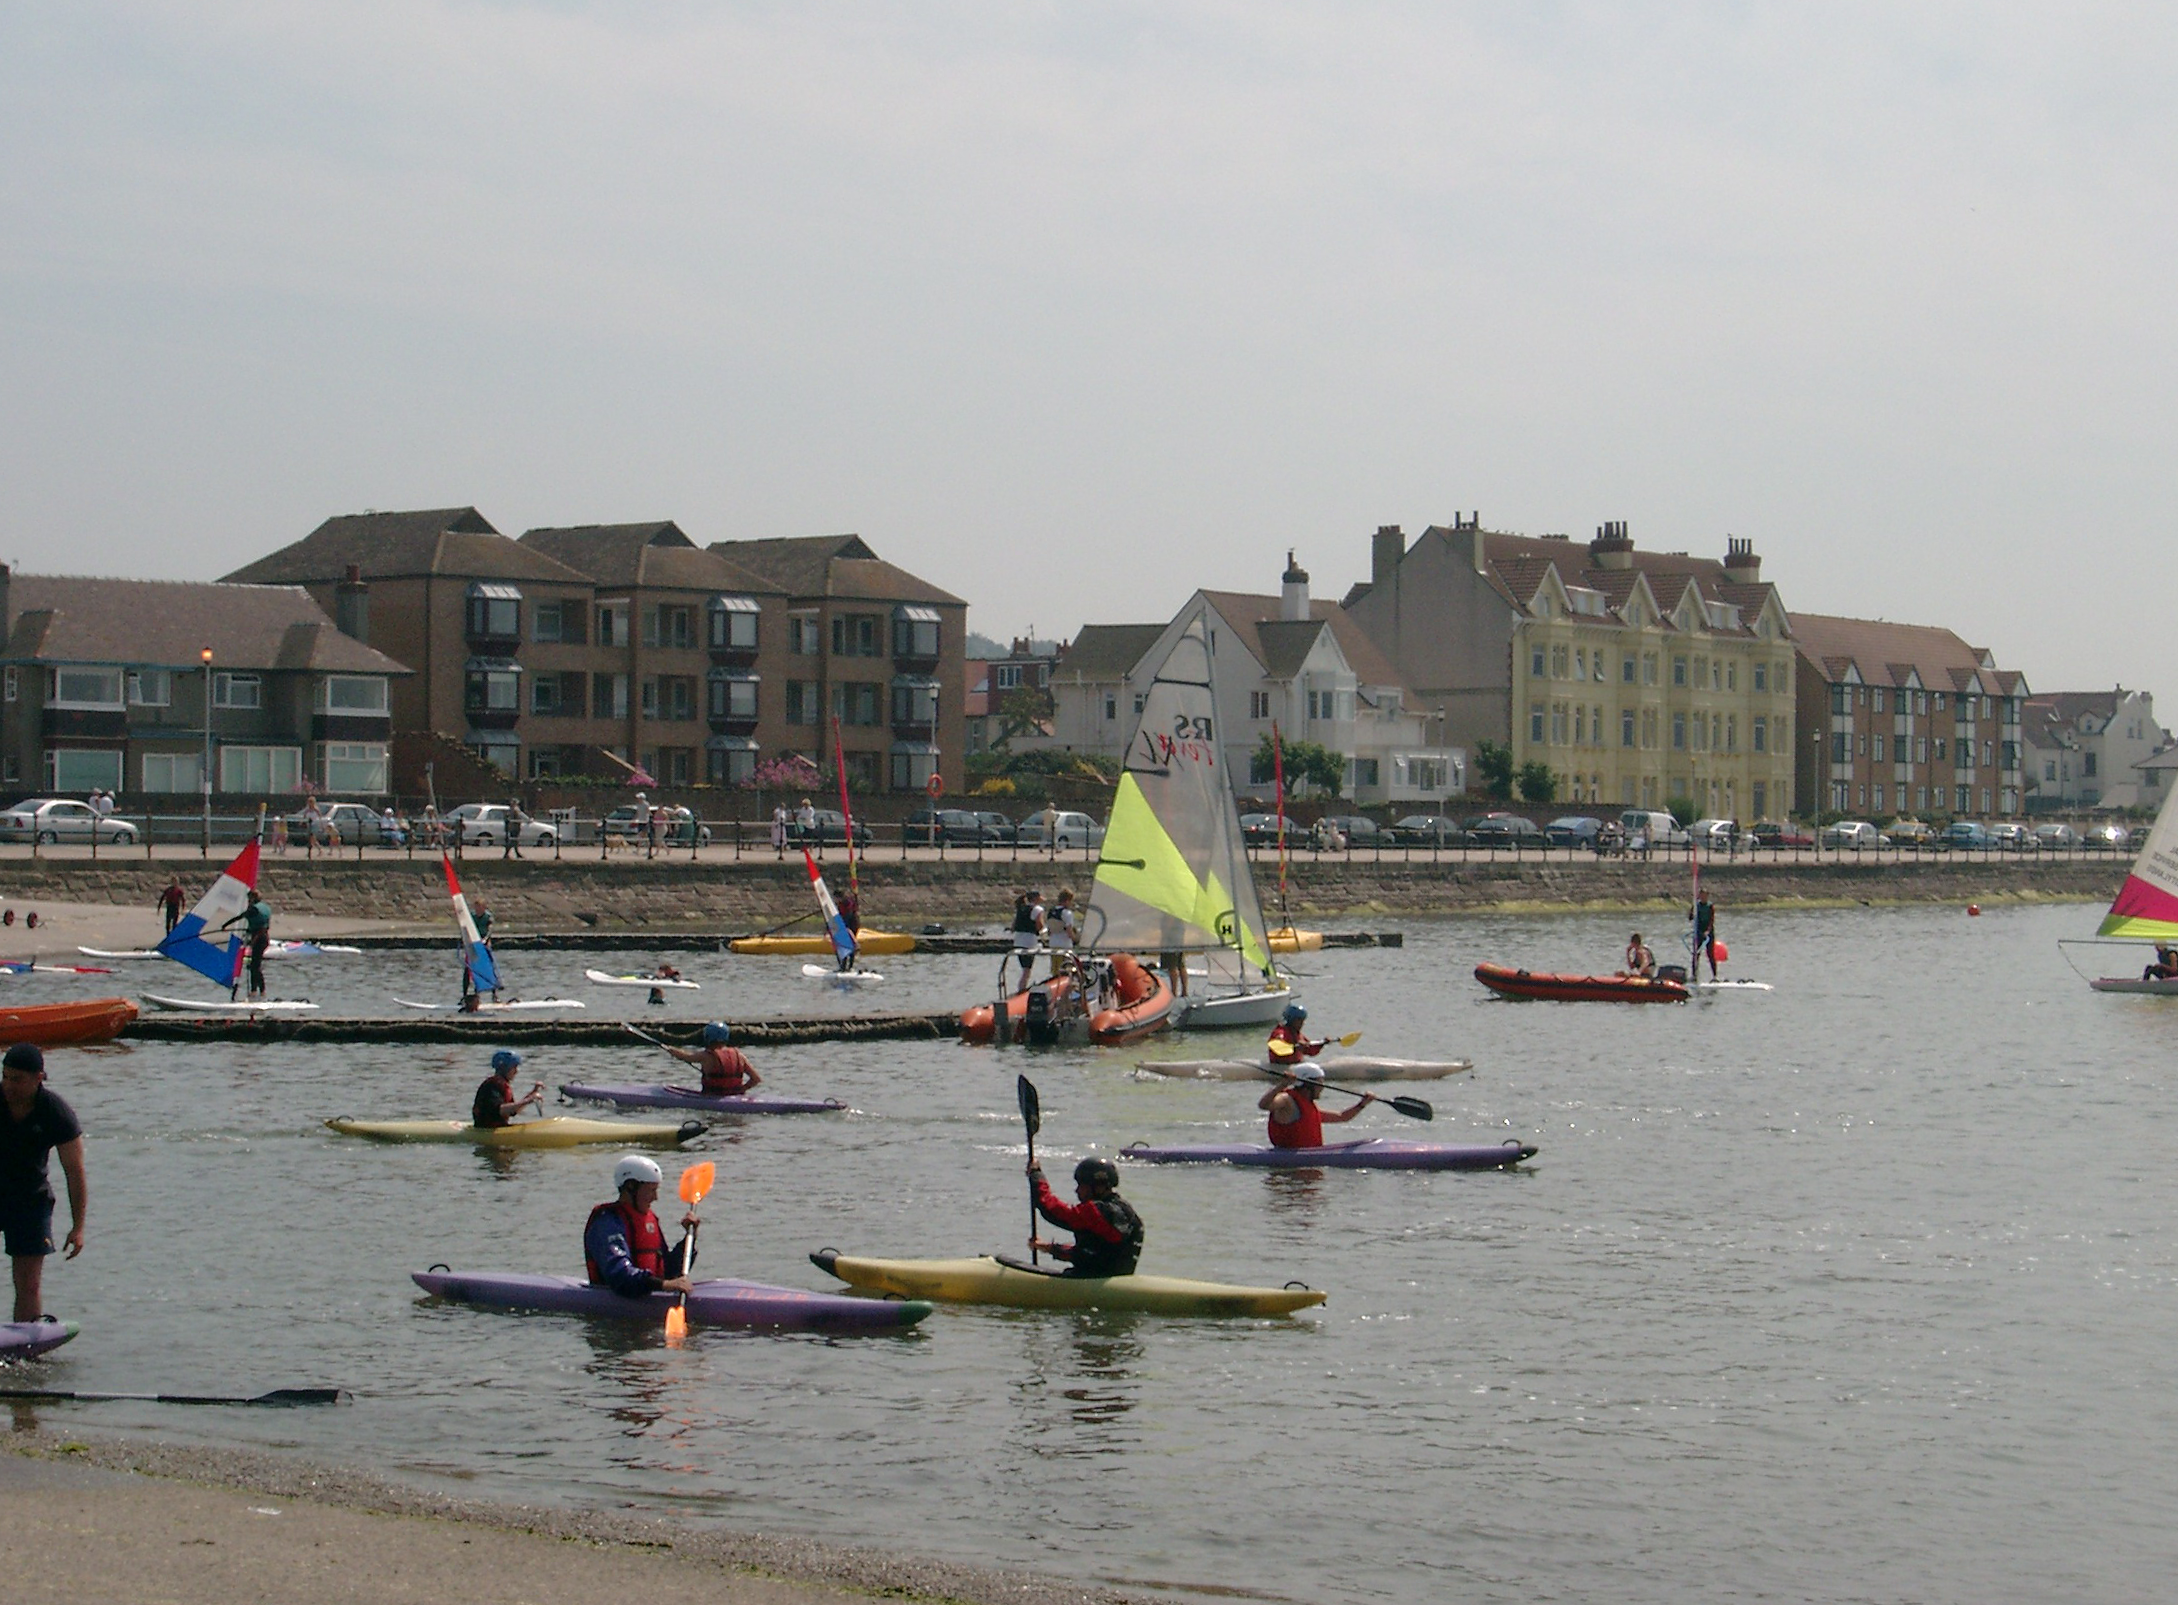 File:Canoeing on West Kirby Marine Lake - 2003-07-15.png ...